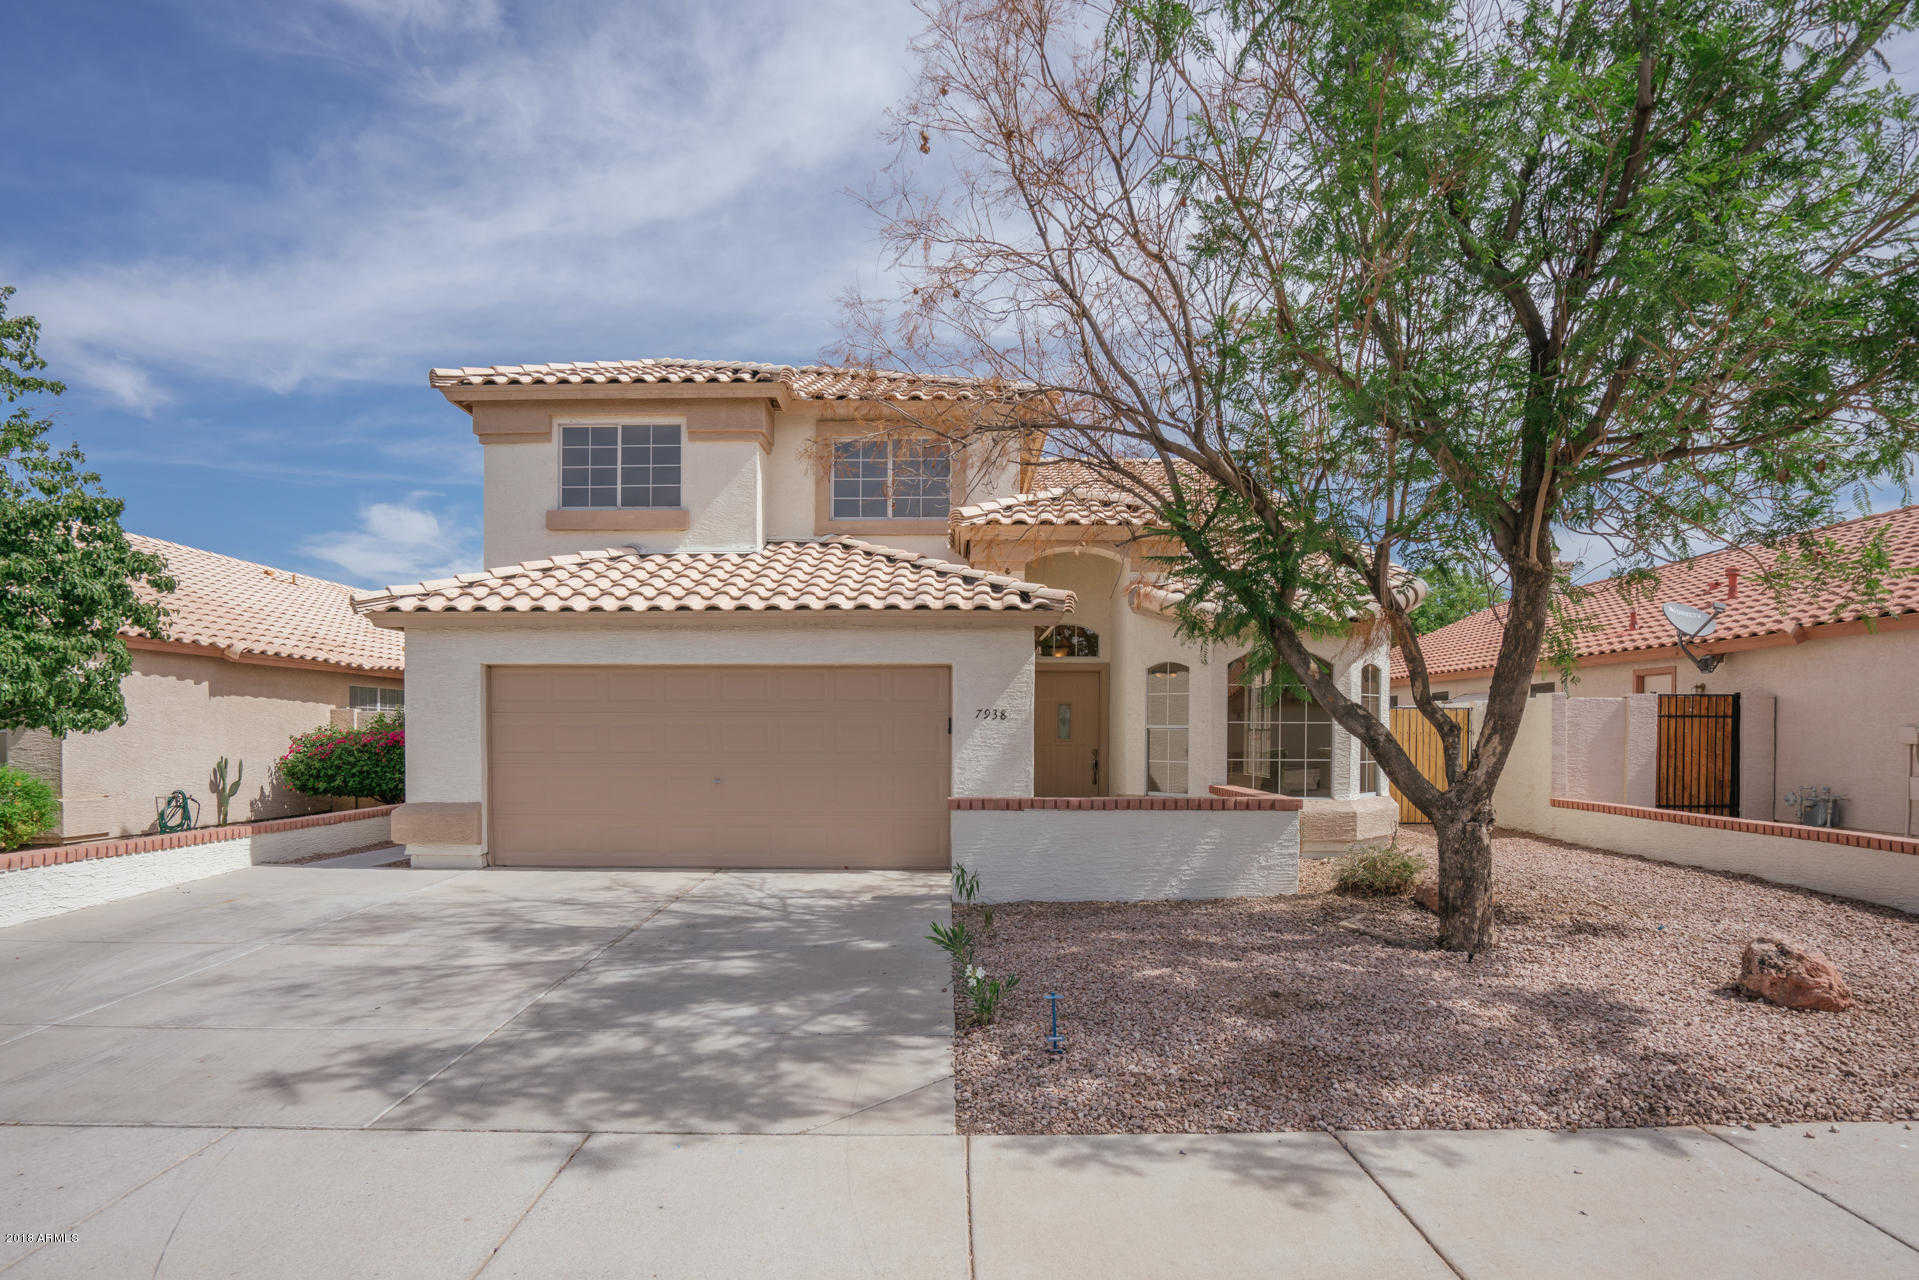 $322,000 - 4Br/3Ba - Home for Sale in Continental At Arrowhead Ranch, Glendale